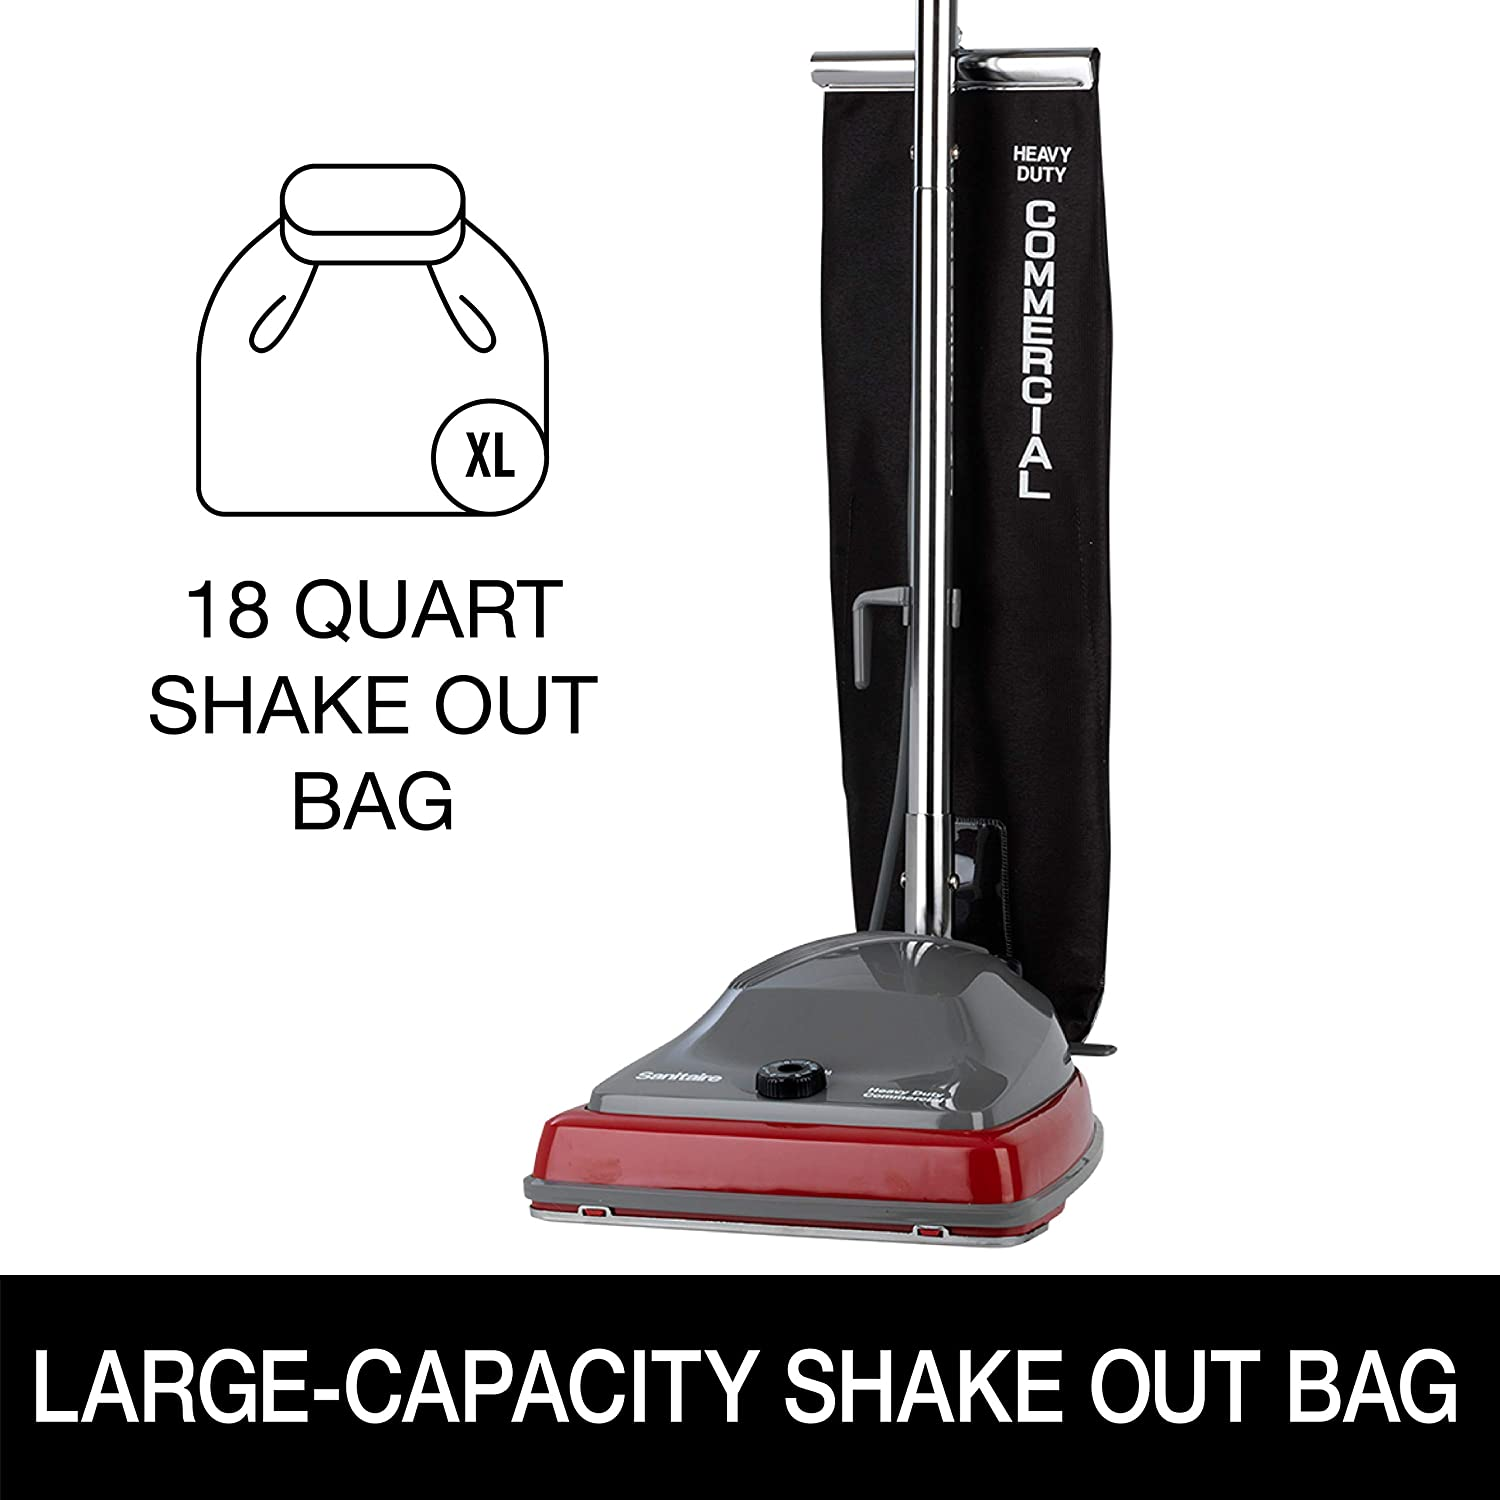 Review of Sanitaire Tradition Upright Commercial Bagged Vacuum, SC679K